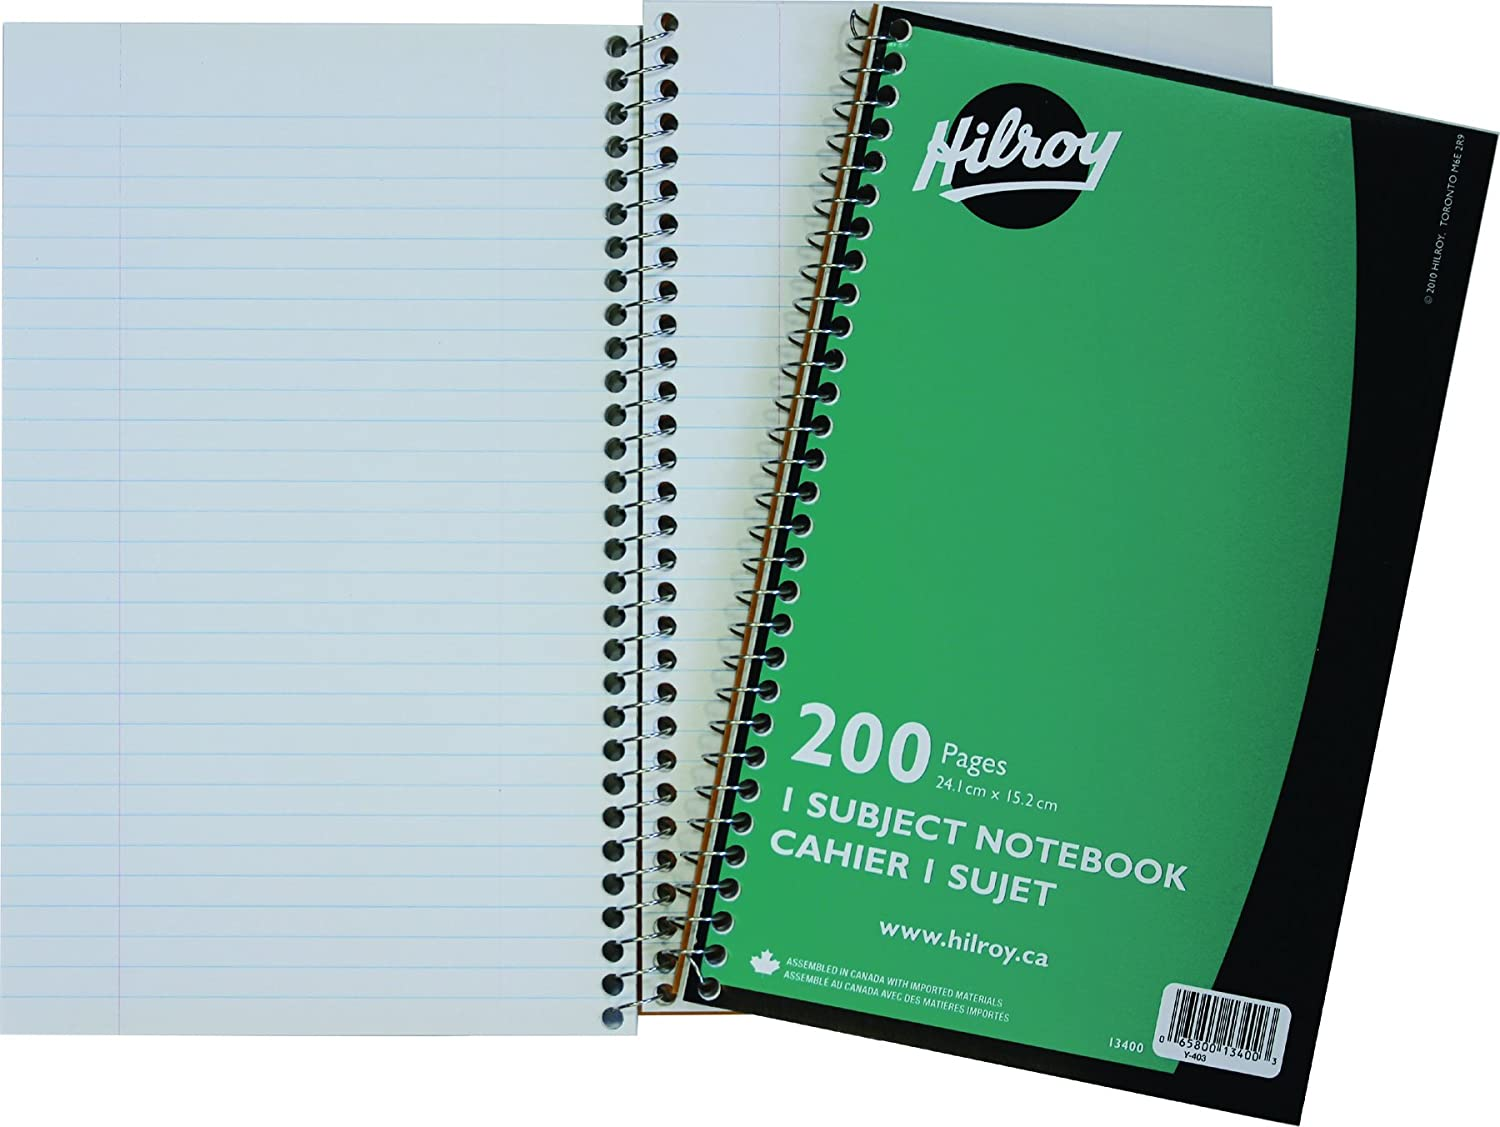 Hilroy Coil 1-Subject Notebook, Wide Ruled, 9.5 x 6 Inches, 160 Pages, Red Covers (13404)